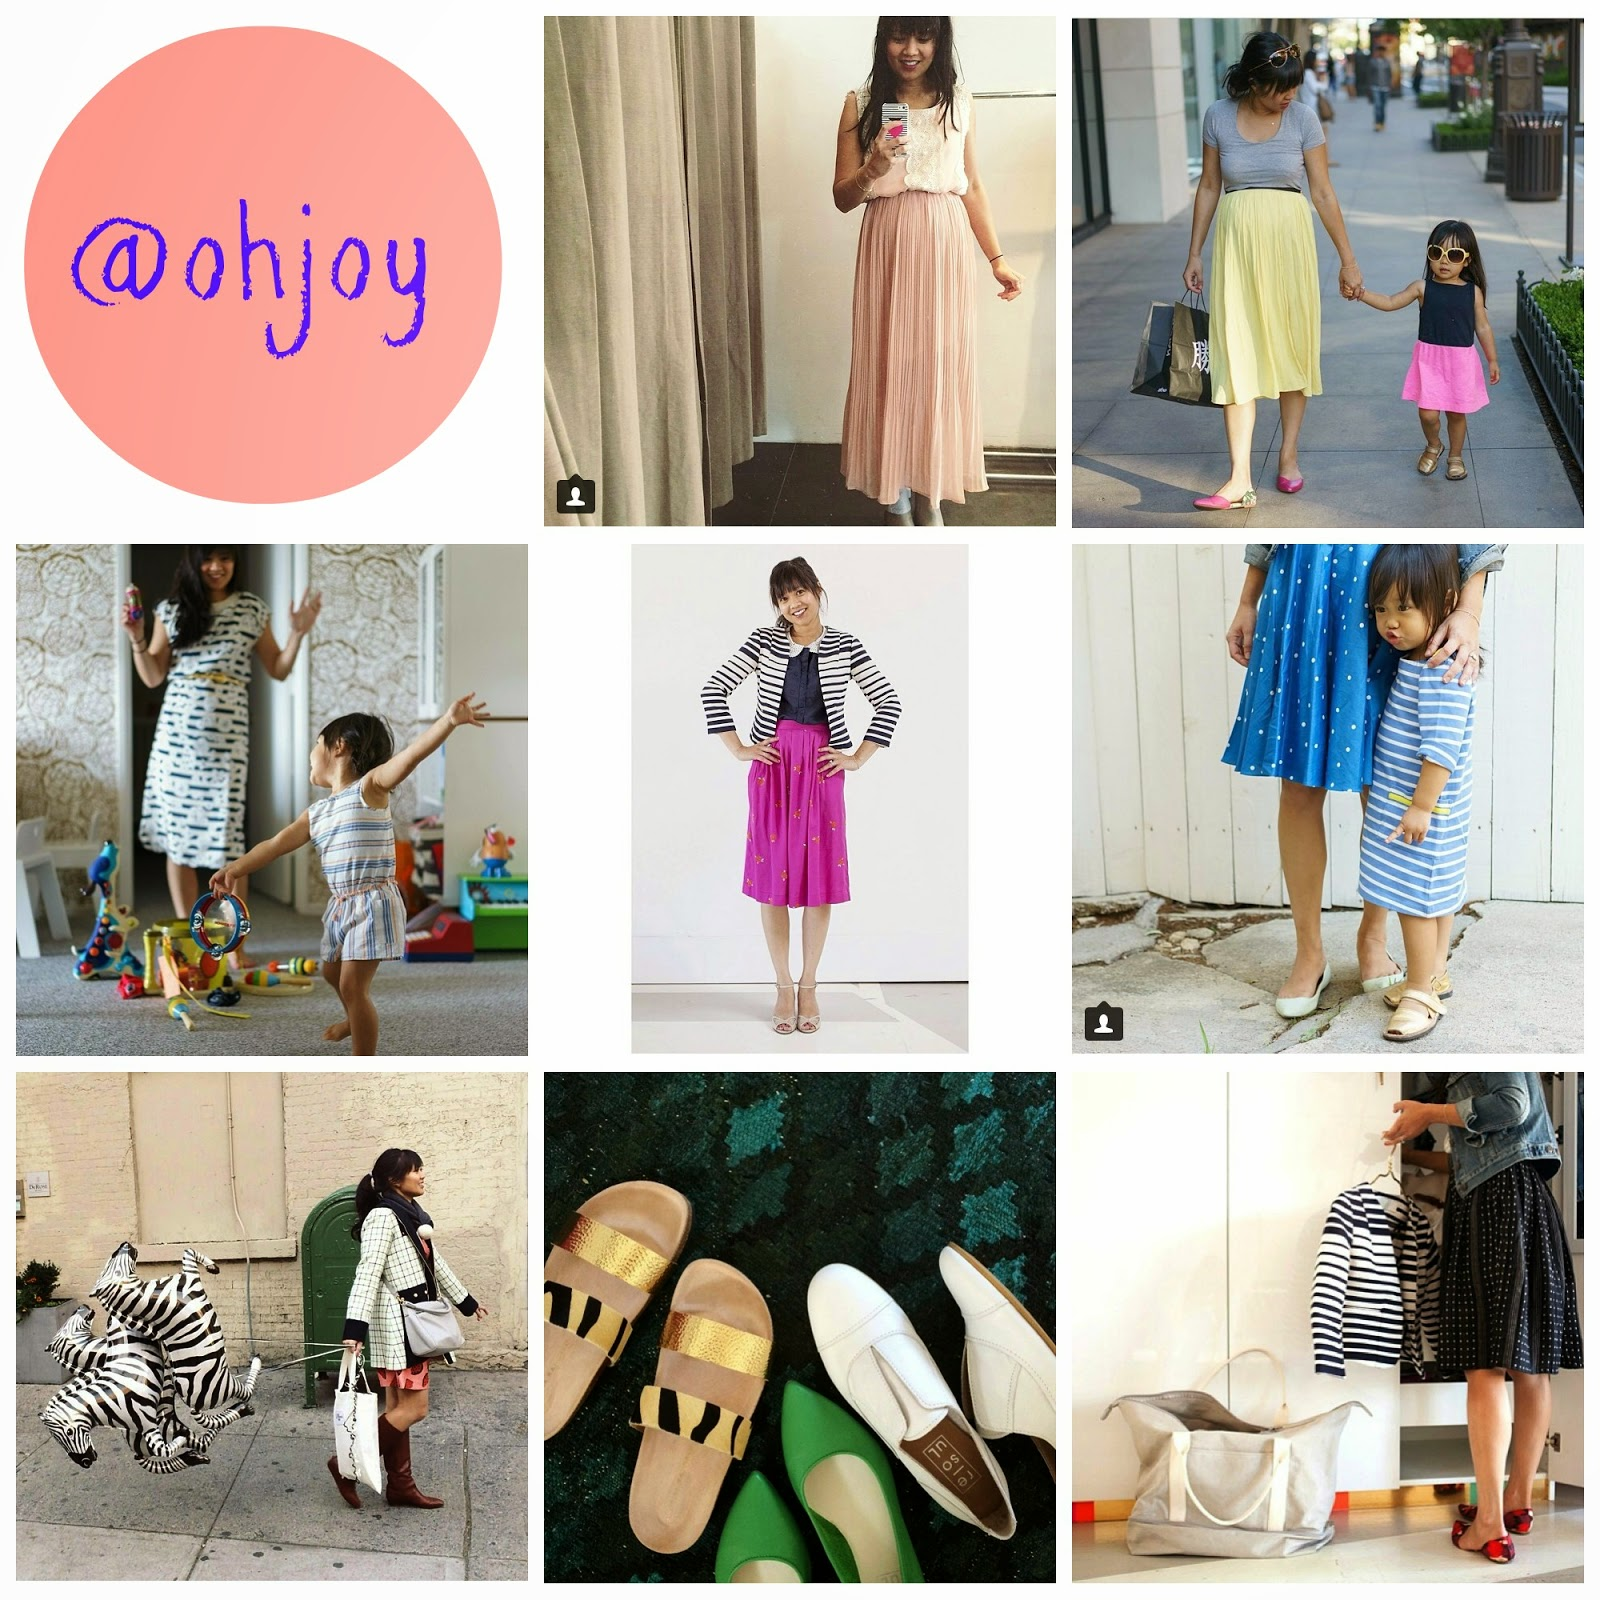 10 of the most STYLISH mums on Instagram! (Part 1) | ohjoy | joy cho | bloggers | stylish mums | mama style | fashion | style | mostly yummy | mostly yummy mummy | fashionistas | courtney babyccino | babayccino kids | courtney adamo | instagram | photography | picts | feed | instagram feed | picts | filters | stylish | Rlle strauss | shop bop | lucky magazine | helen channing | cocomamastyls | journalists | stylist | bloggers | fashion magazine | graphic designers | mamasVIb | my fave instagrm feeds | popular intsgram feeds | mamasVIB